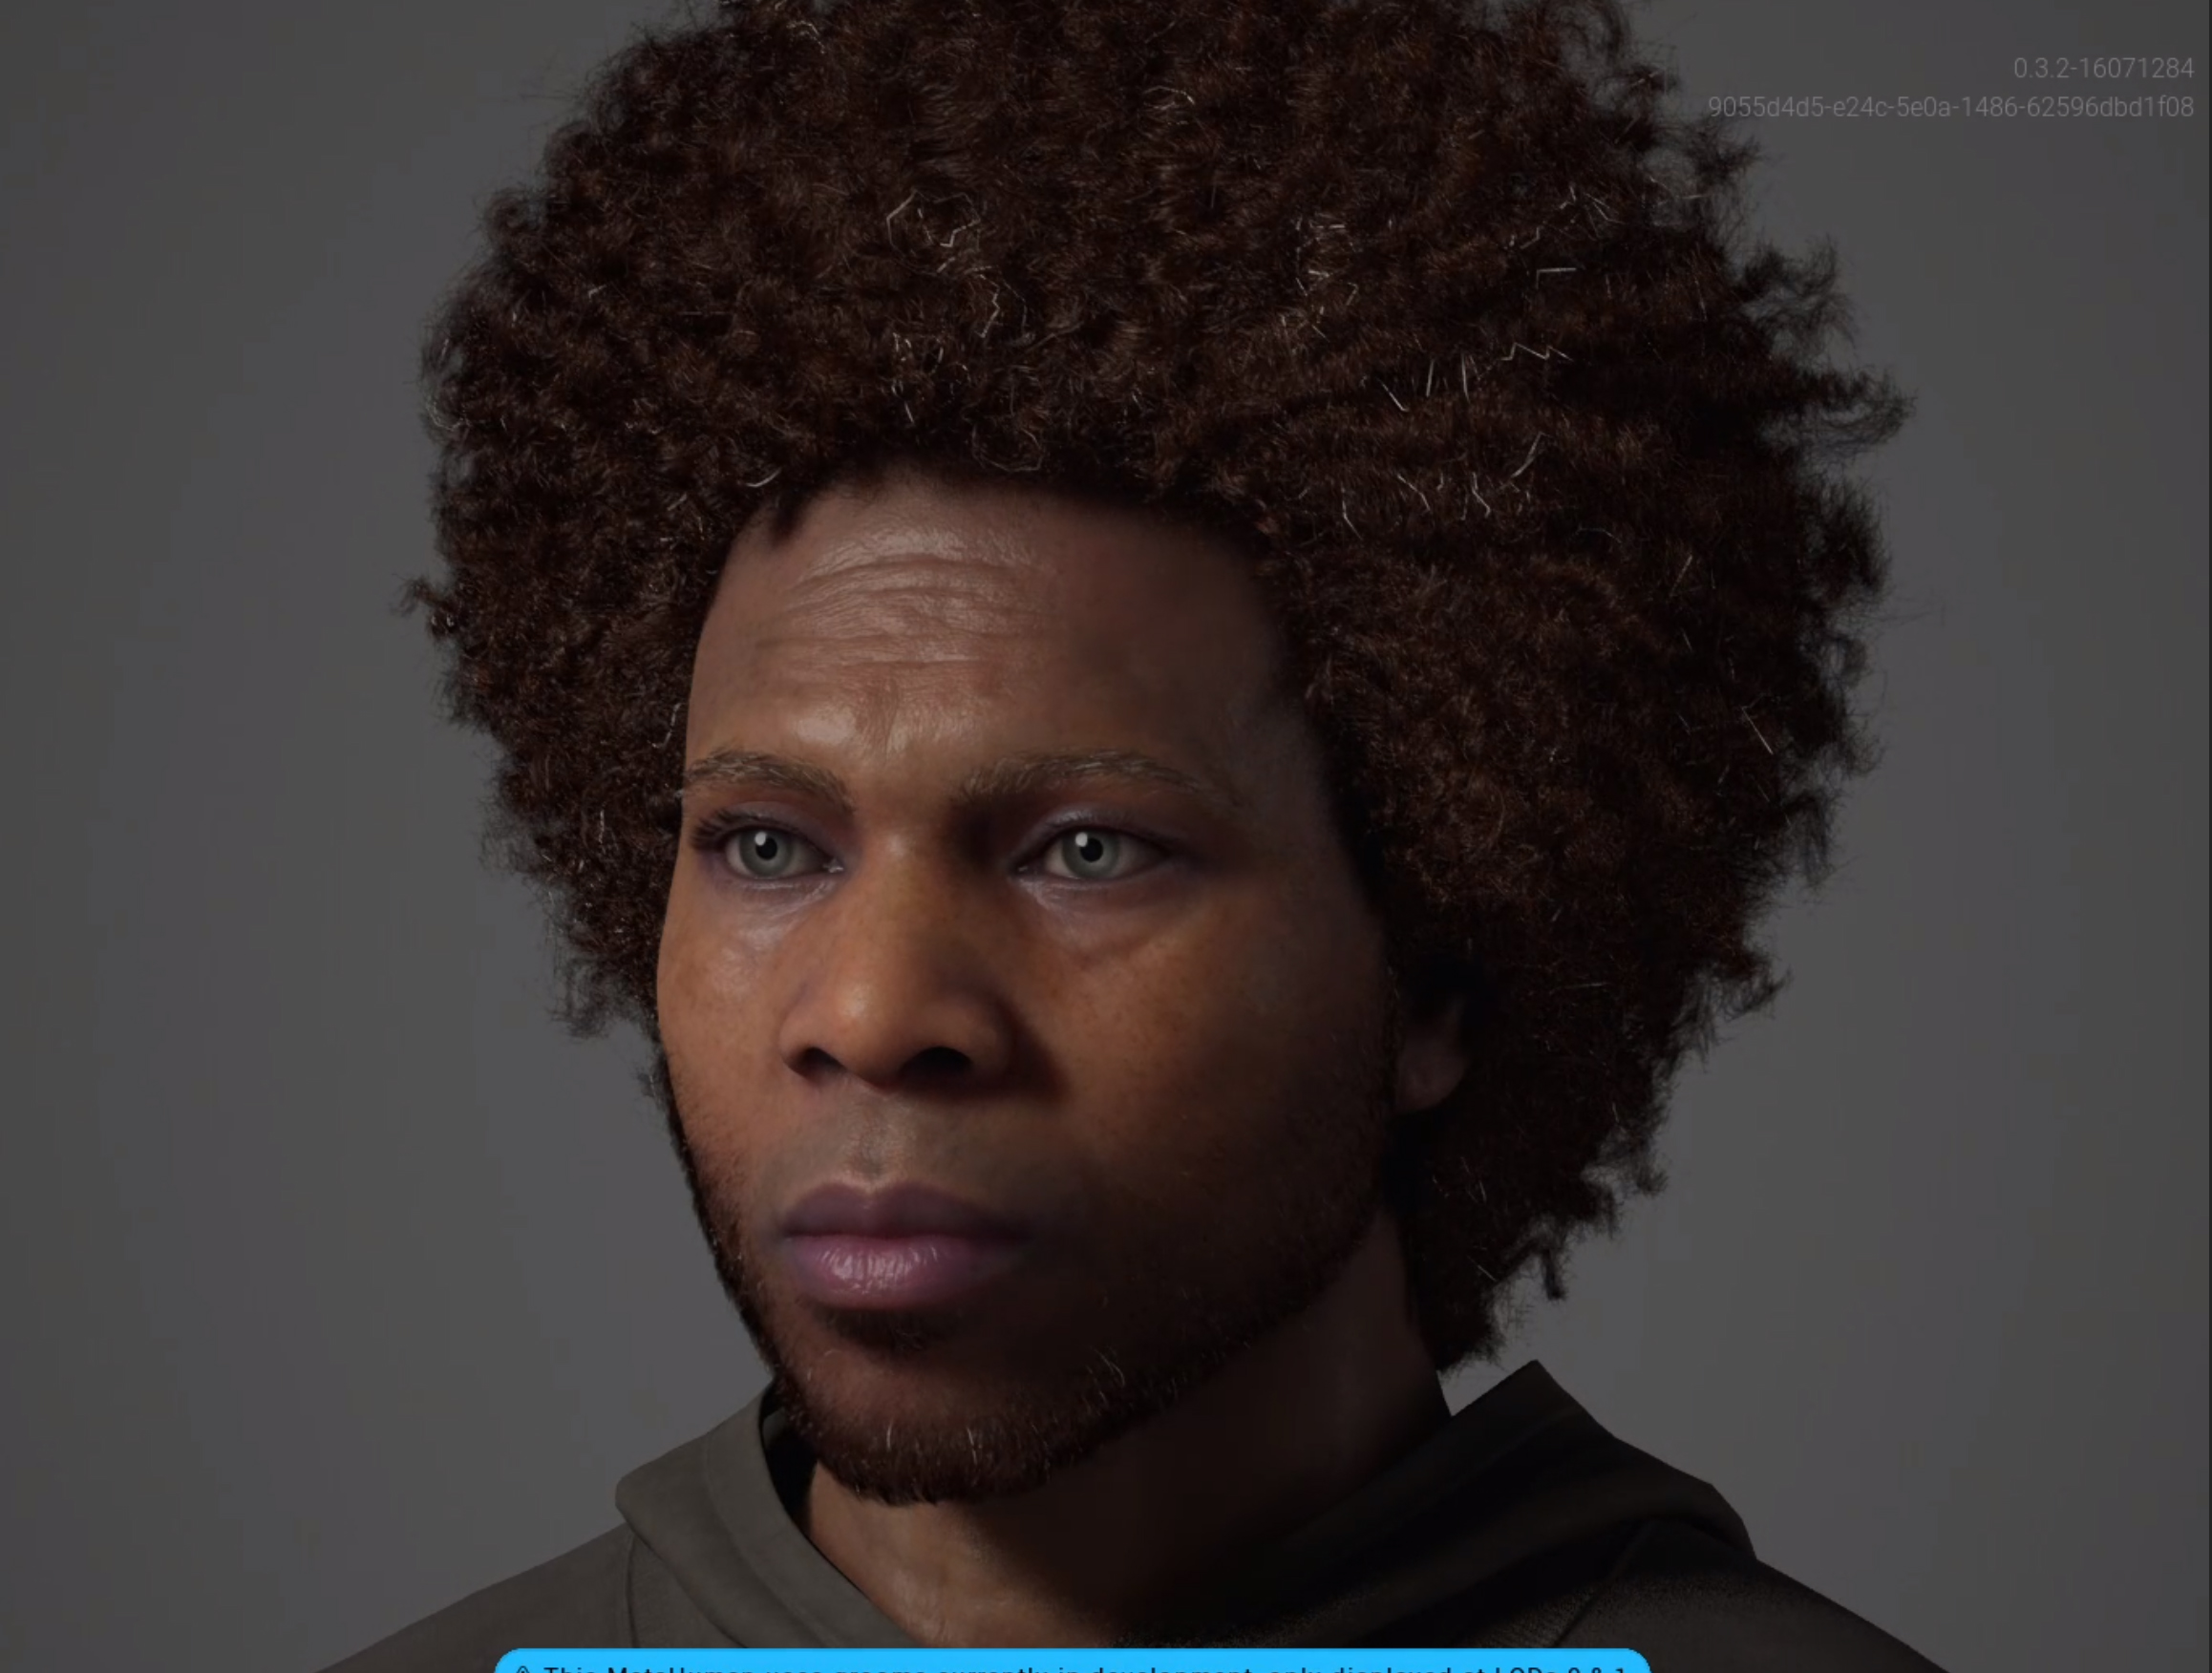 This is Philip a MetaHuman created with the Unreal Engine Metahuman Creator